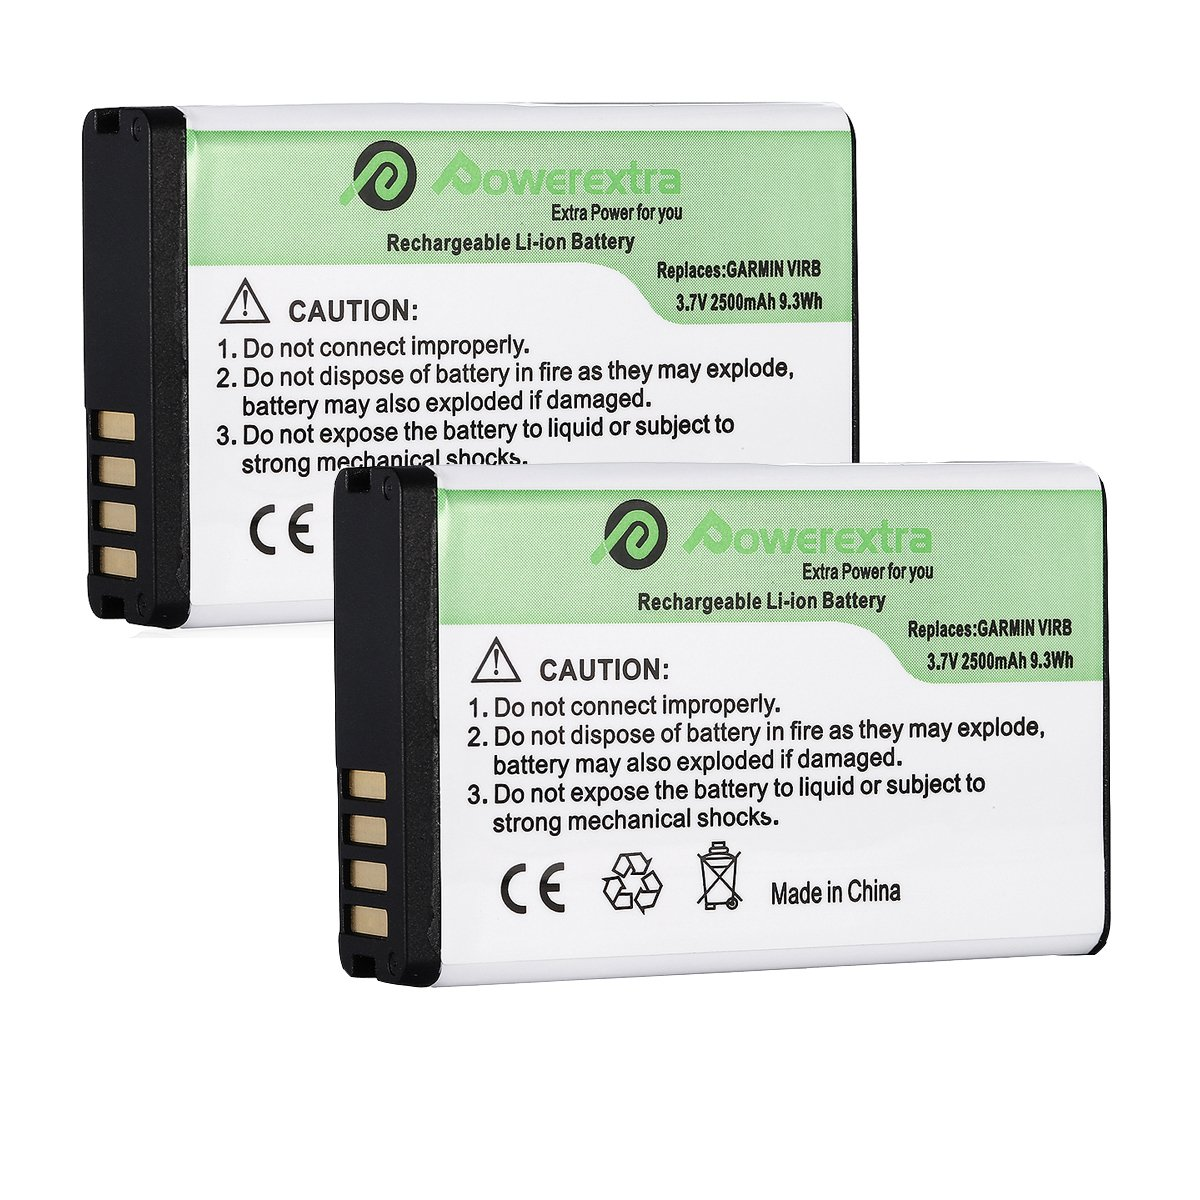 Powerextra 3.7V 2500mAh 2 Pack Replacement Battery for Garmin HD Action Camera 010-11654-03, Alpha, Montana 600, 600 CAMO, 600T, 650, 650T, Monterra, P11P15-04-N02, Virb, Virb Elite